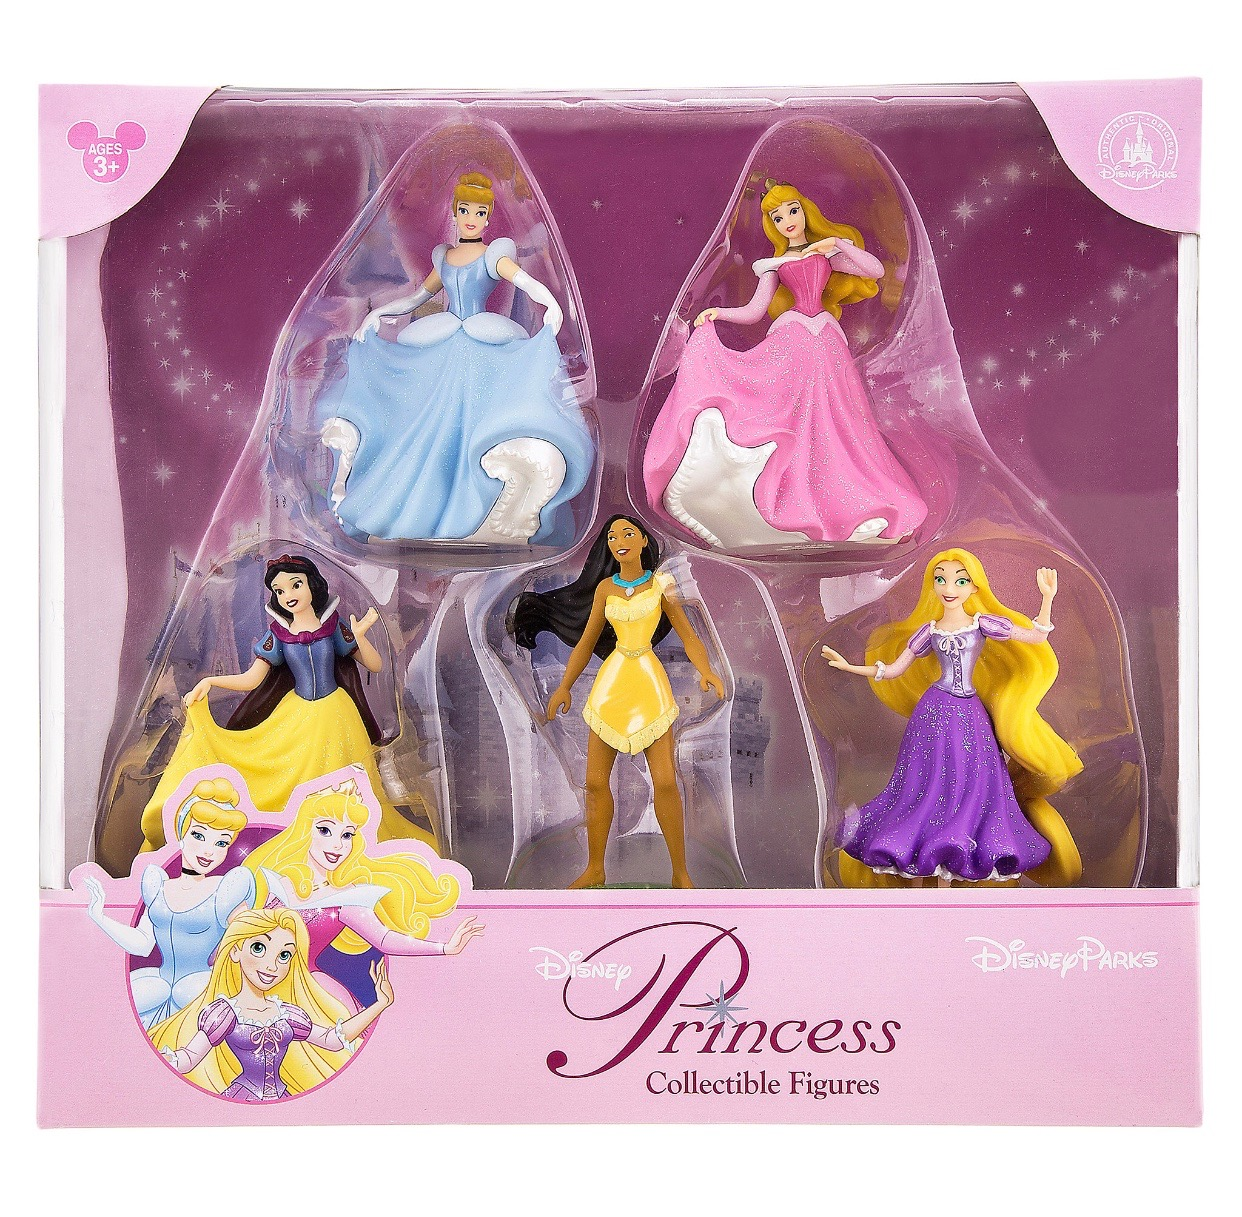 2ccb5ef7cda disney parks princesses aurora rapunzel figure cake topper playset new with  box 3 3 of 3 See More